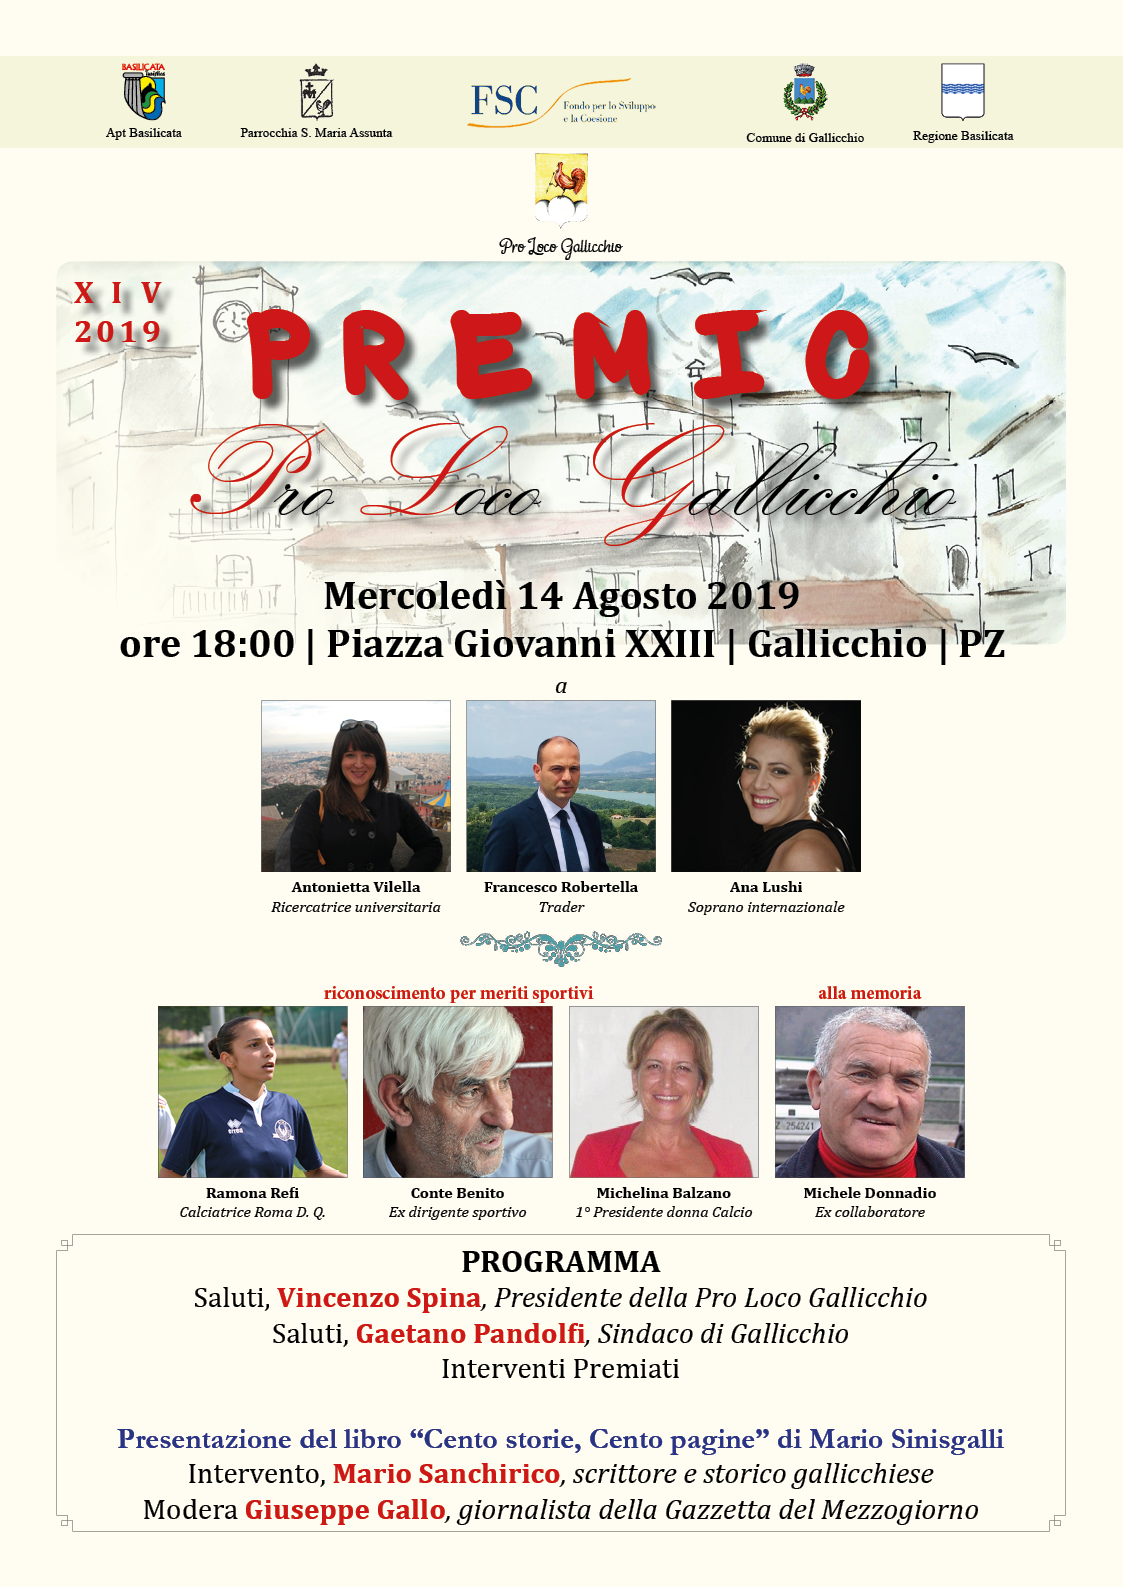 Estate Gallicchiese 2019 10